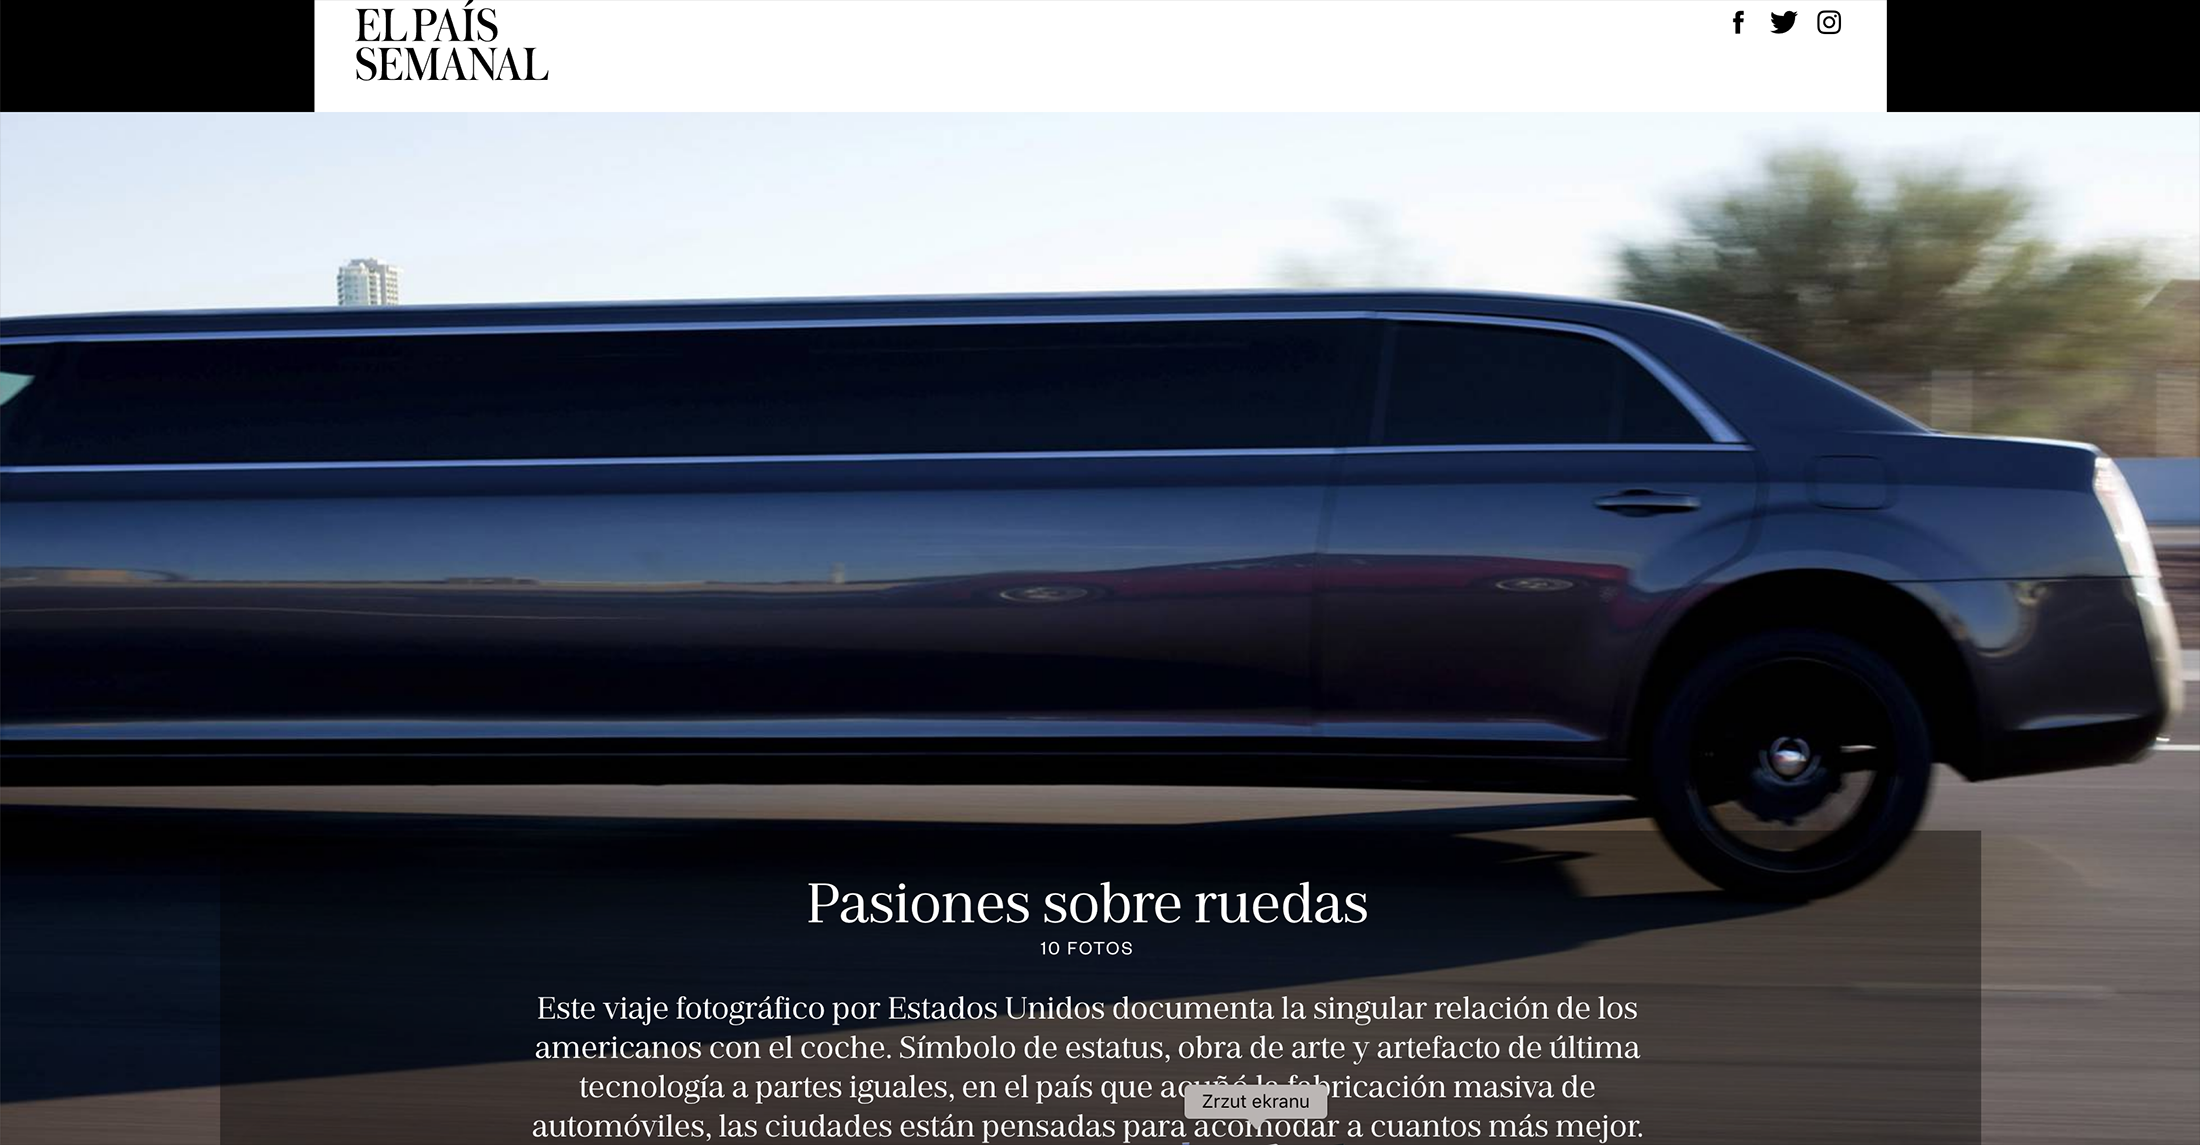 Art and Documentary Photography - Loading 201812__El_Pais_Automobile_America.png